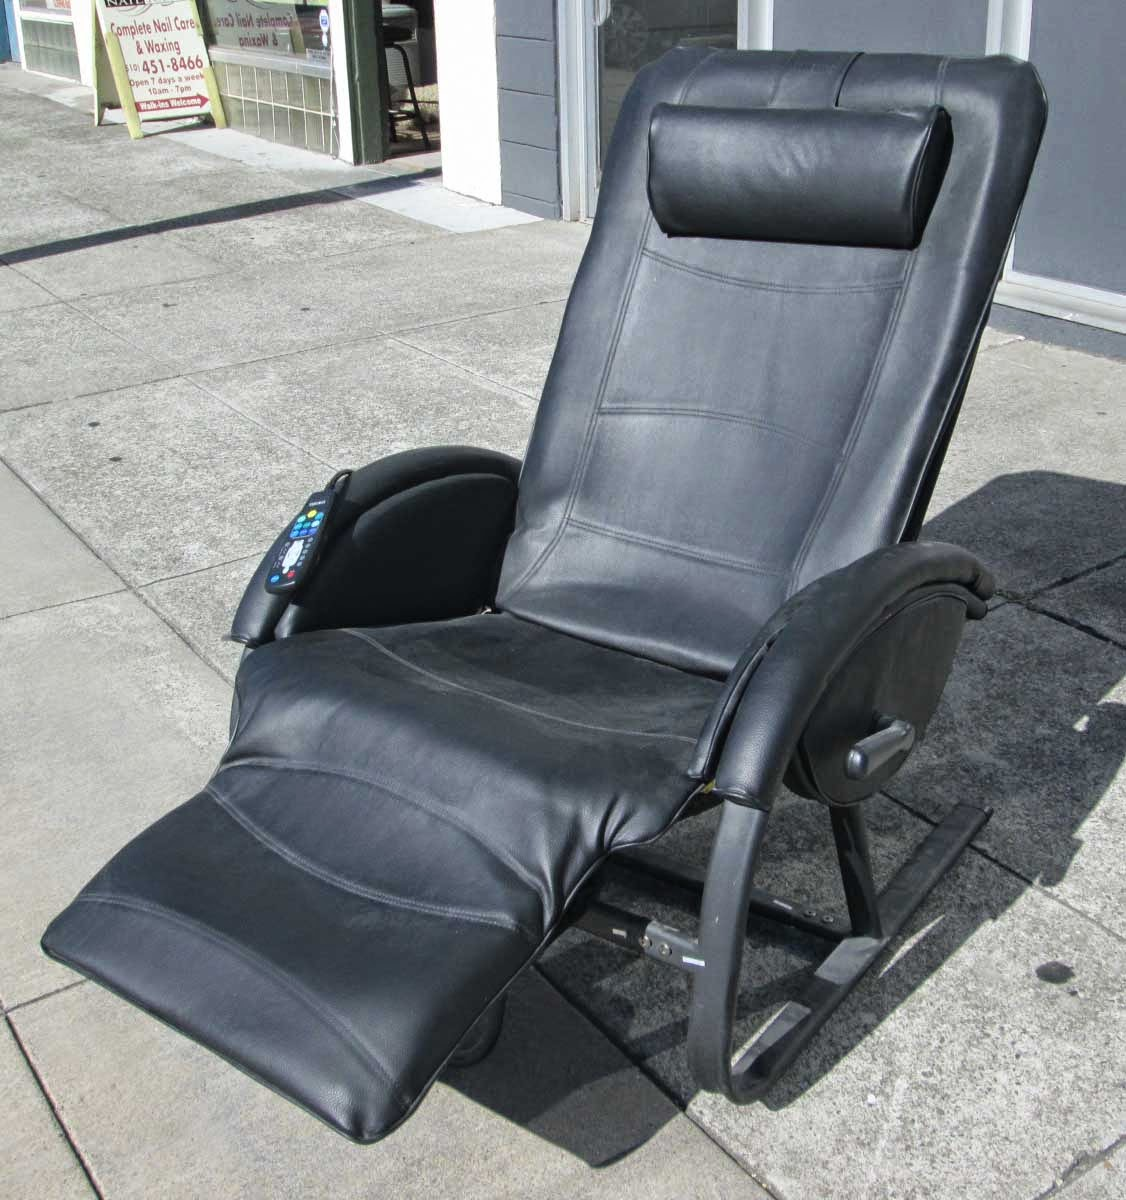 Homedics Elounger Massage Chair The Silver Movie 2015 Uhuru Furniture And Collectibles Sold Antigravity